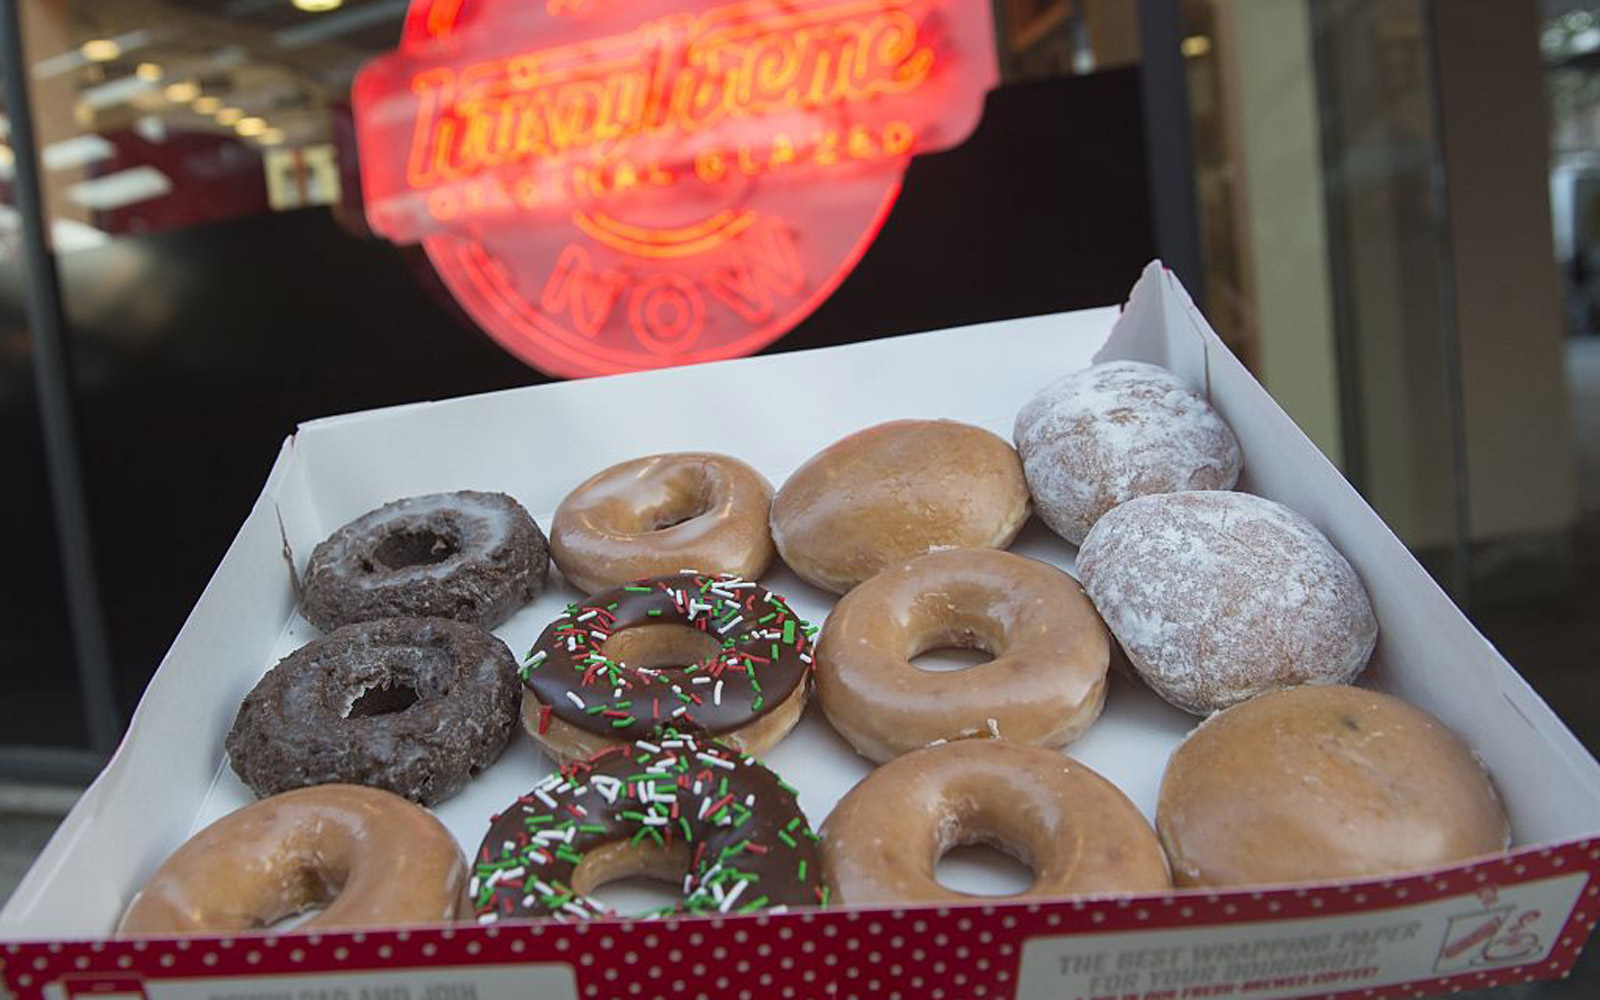 Krispy Kreme doughnuts are seen outside their store in Washington, DC, December 1, 2016. / AFP / SAUL LOEB        (Photo credit should read SAUL LOEB/AFP/Getty Images)